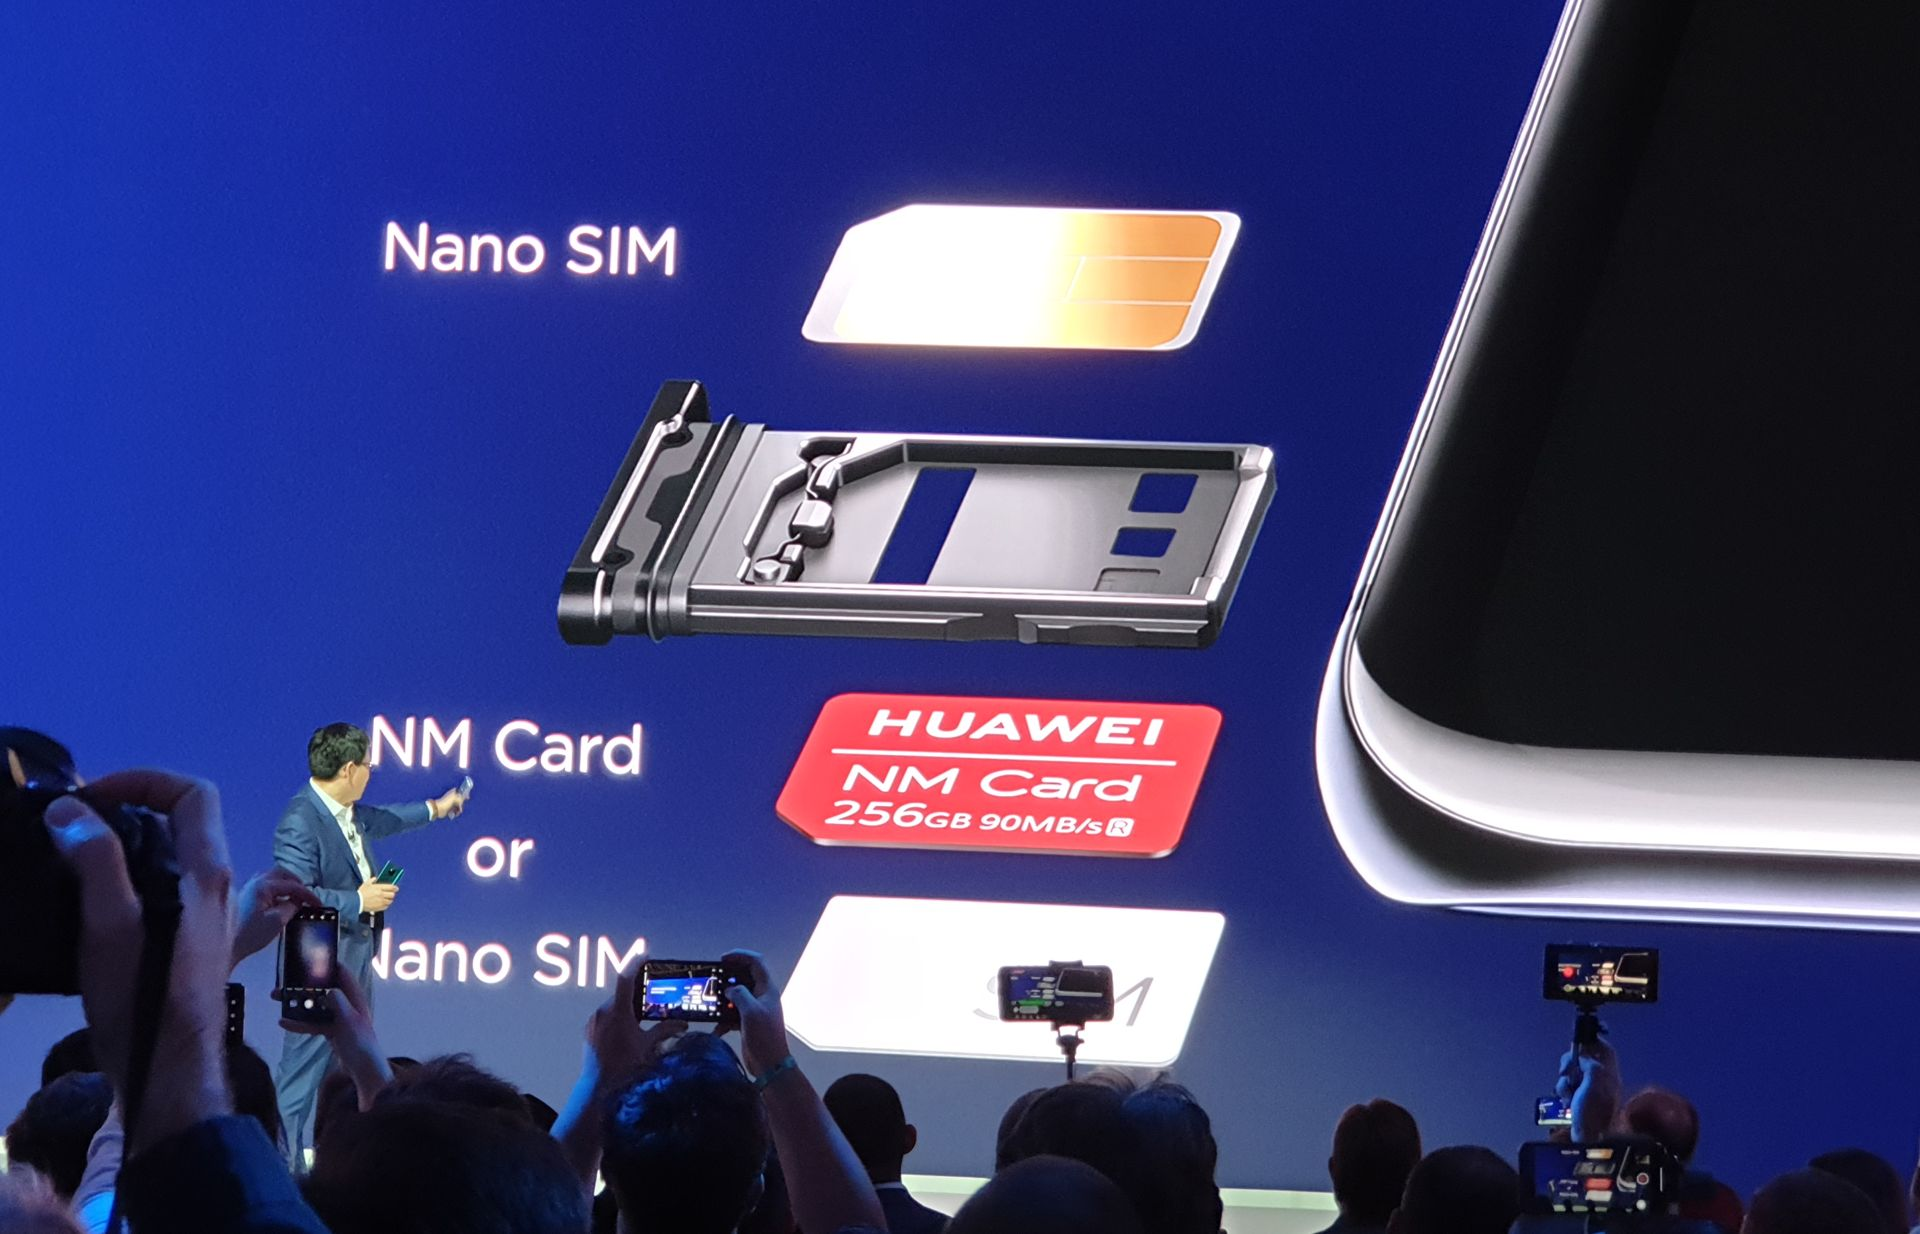 Huawei gets banned from using SD cards as bad days become worse